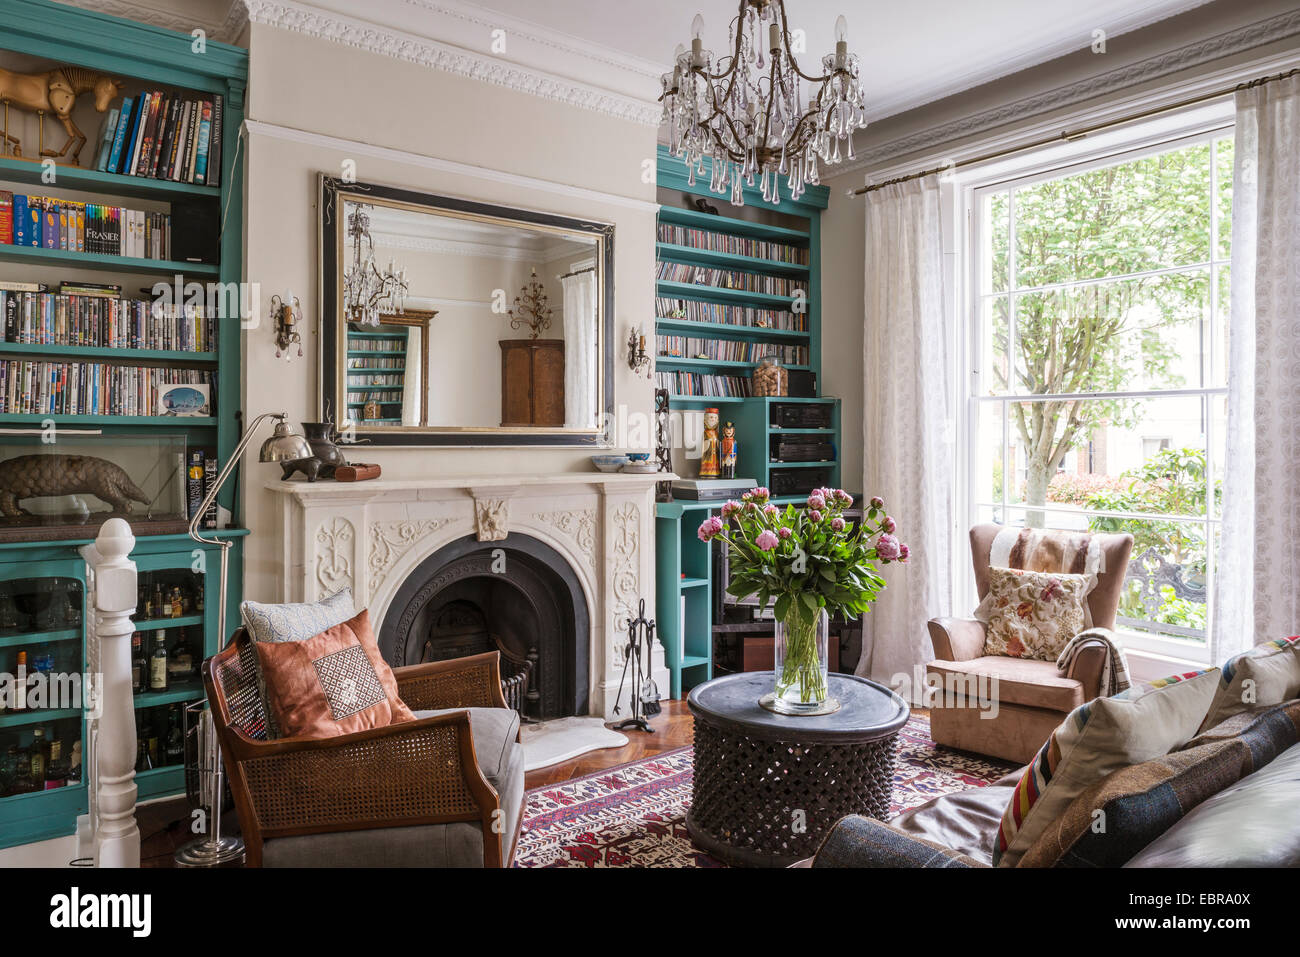 Turquoise Shelving In Elegant Living Room With Marble Fireplace